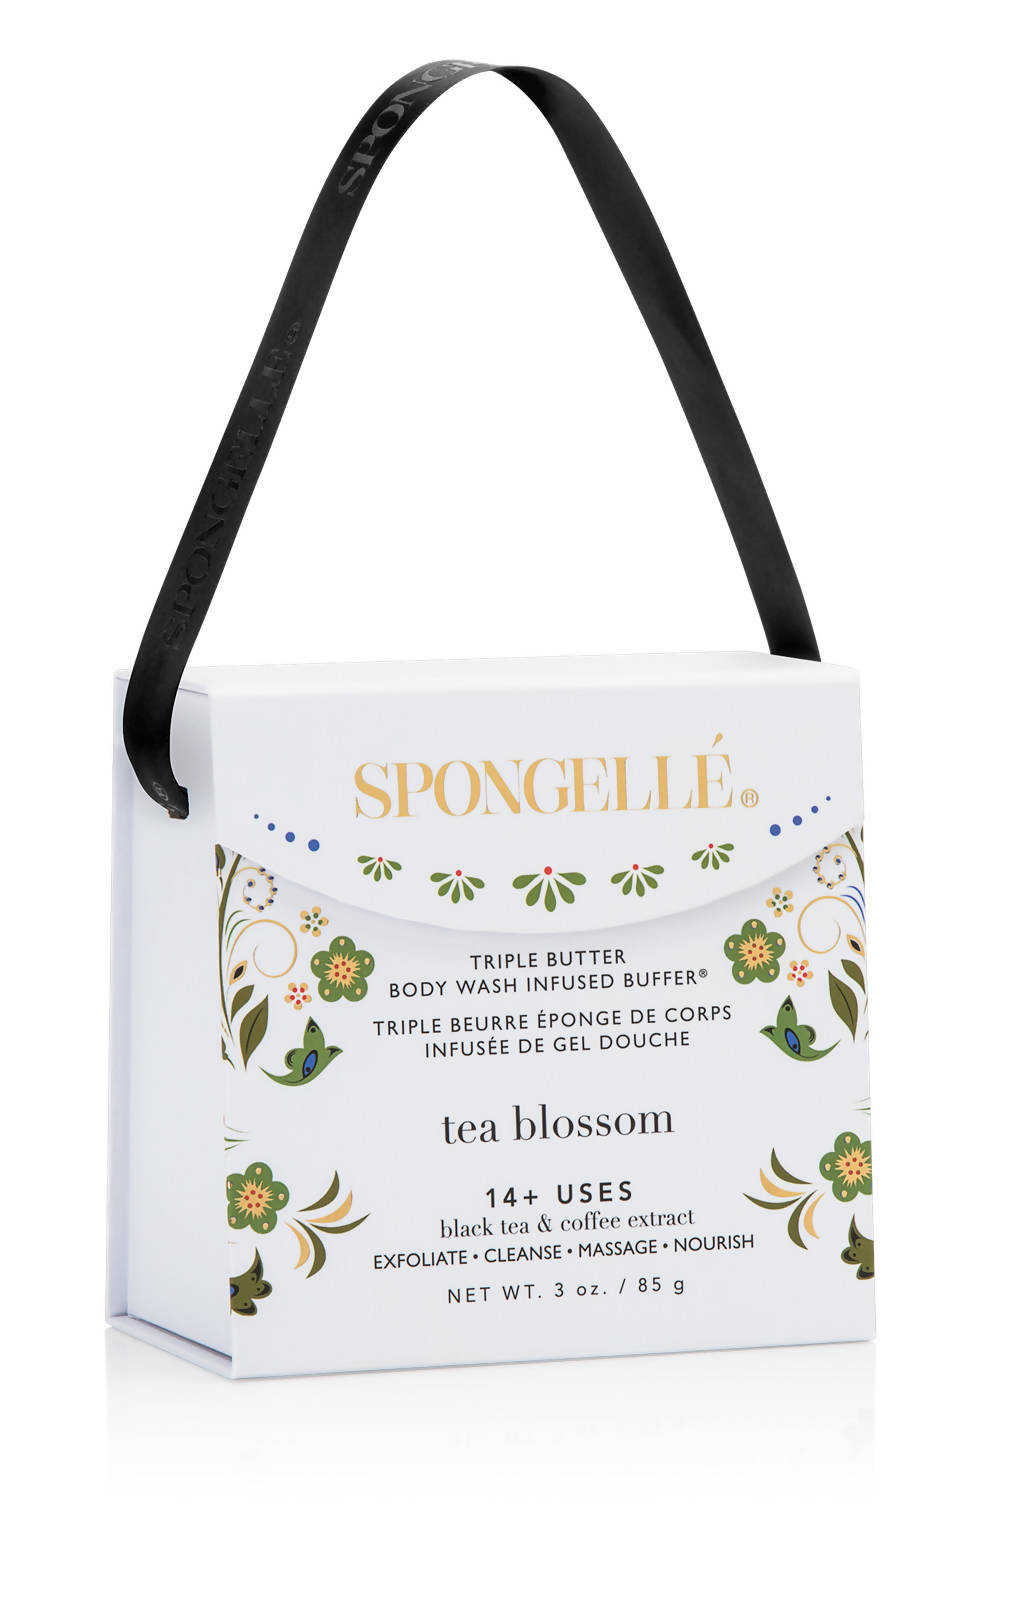 Tea Blossom | Romanticism - Body Wash Infused Buffer - Body Scrubs - Spongellé - Naiise